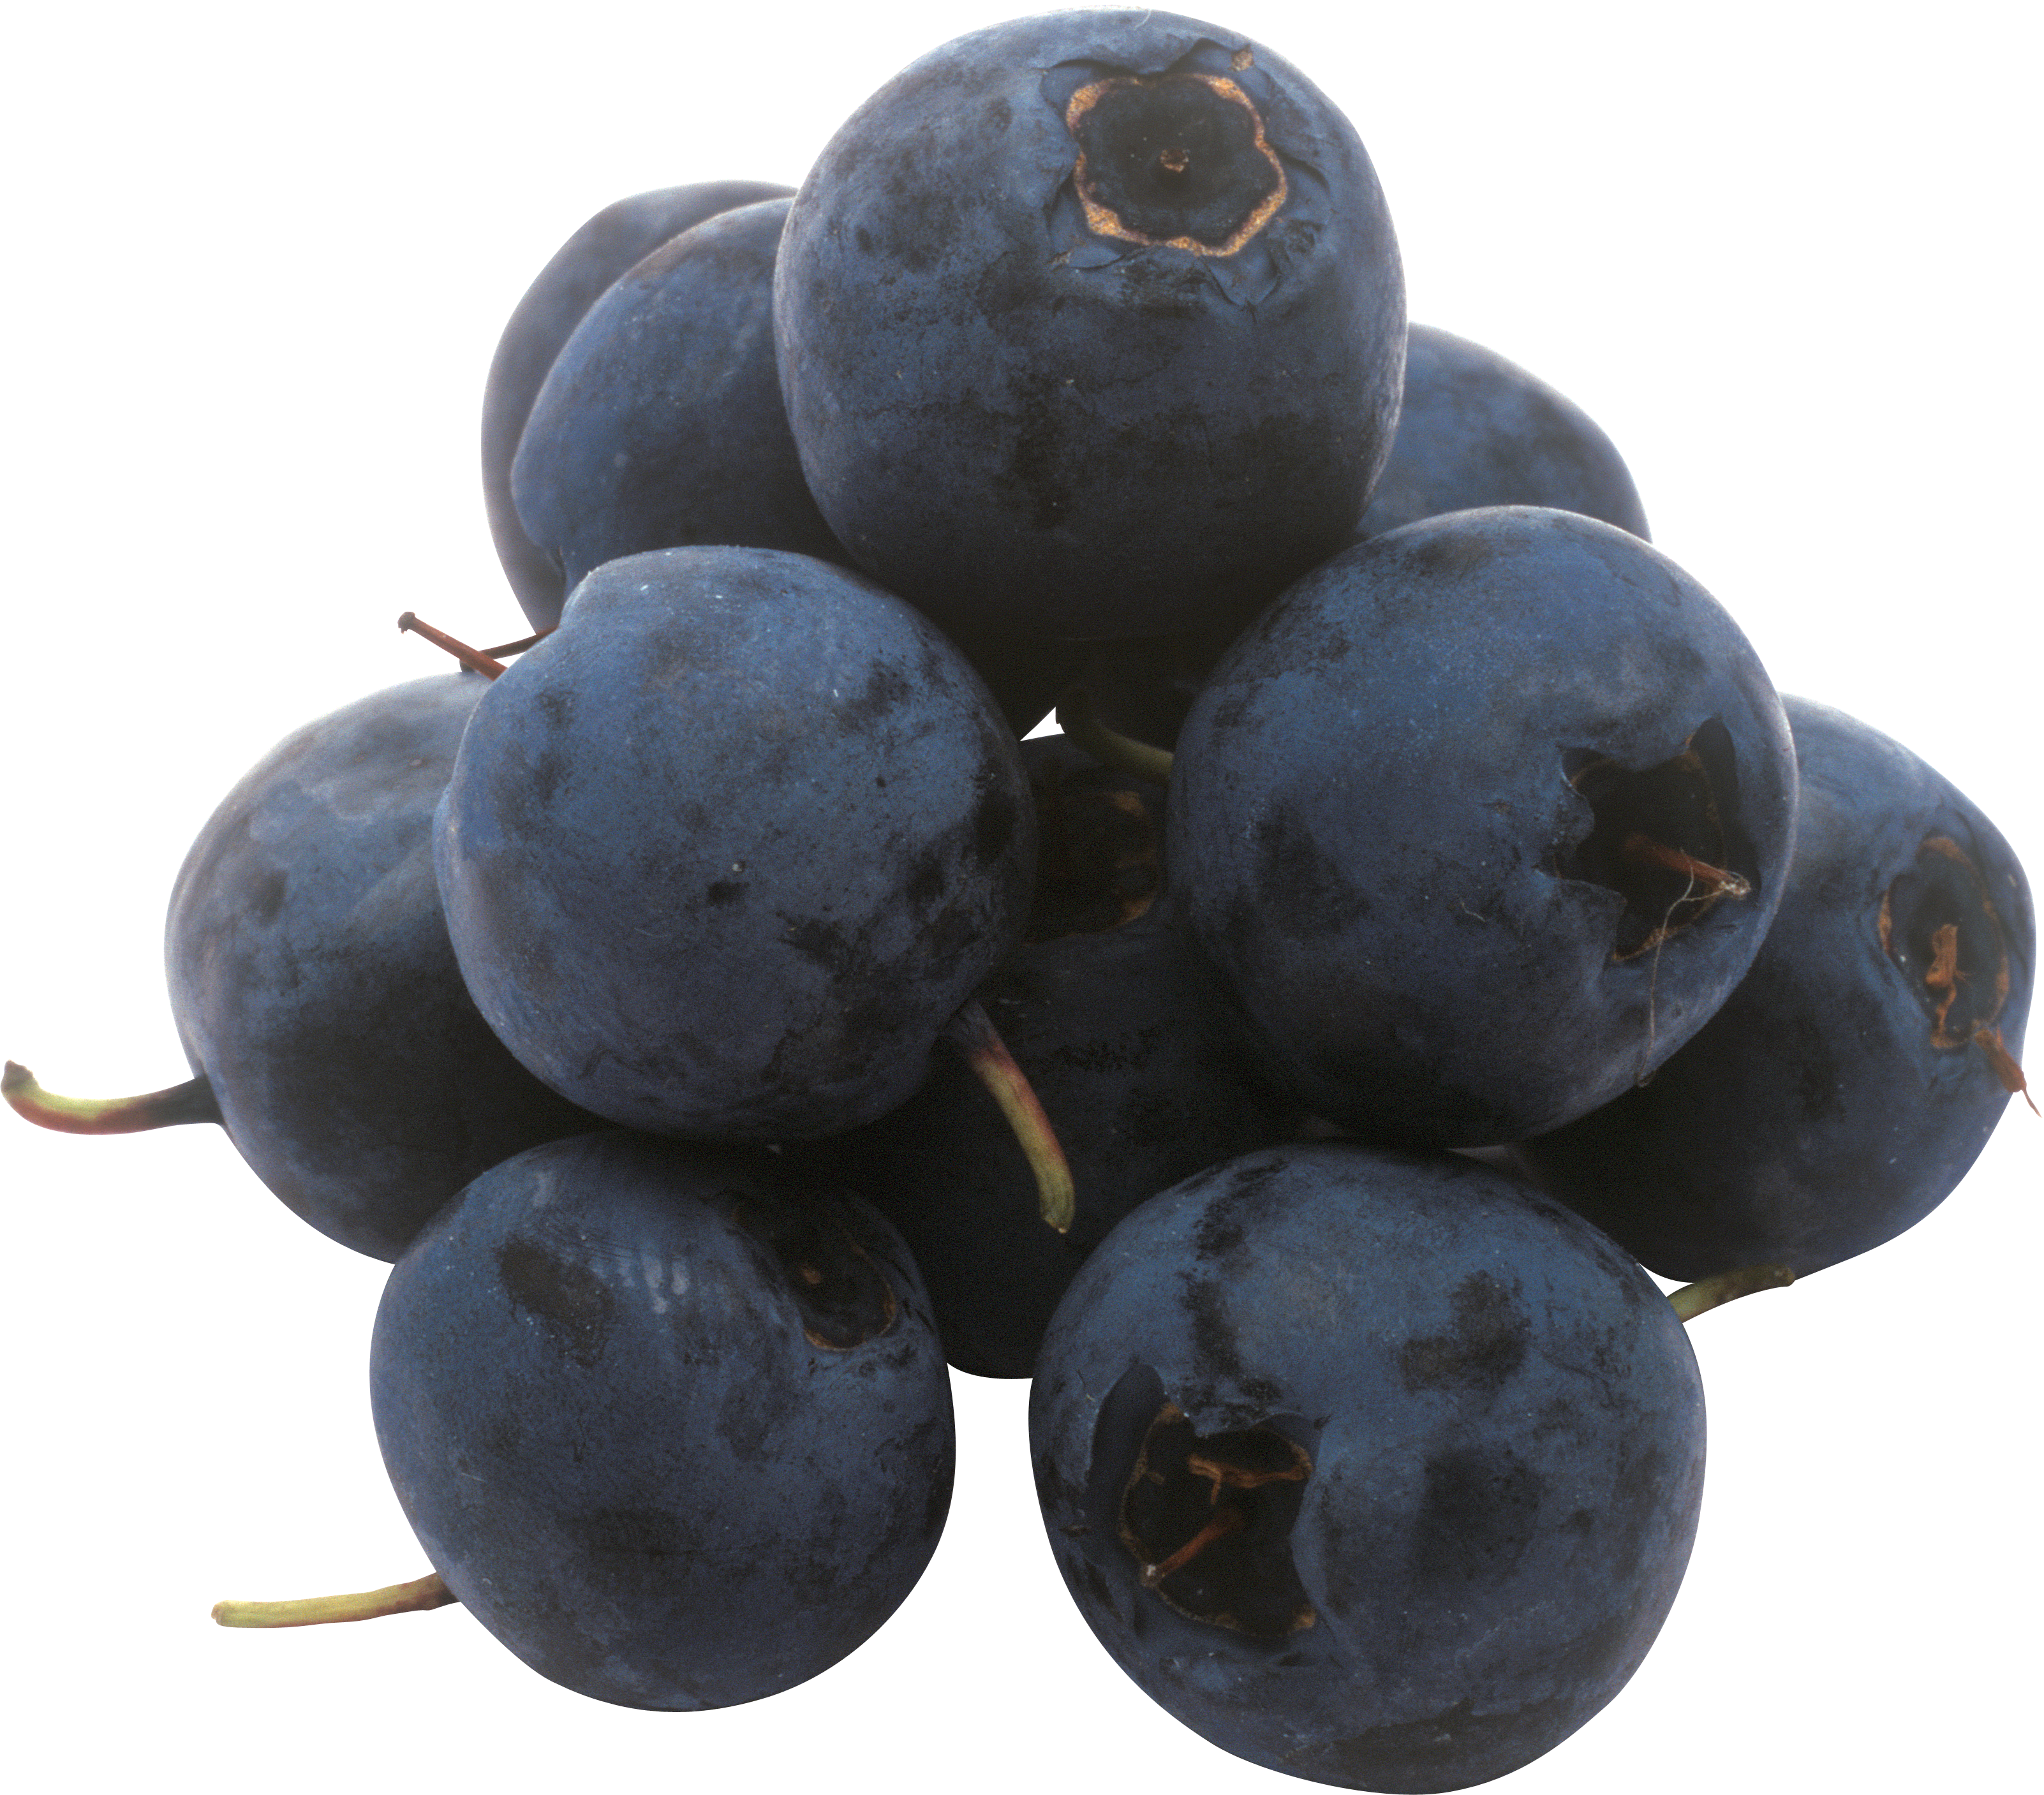 Png images free download. Blueberries clipart grape